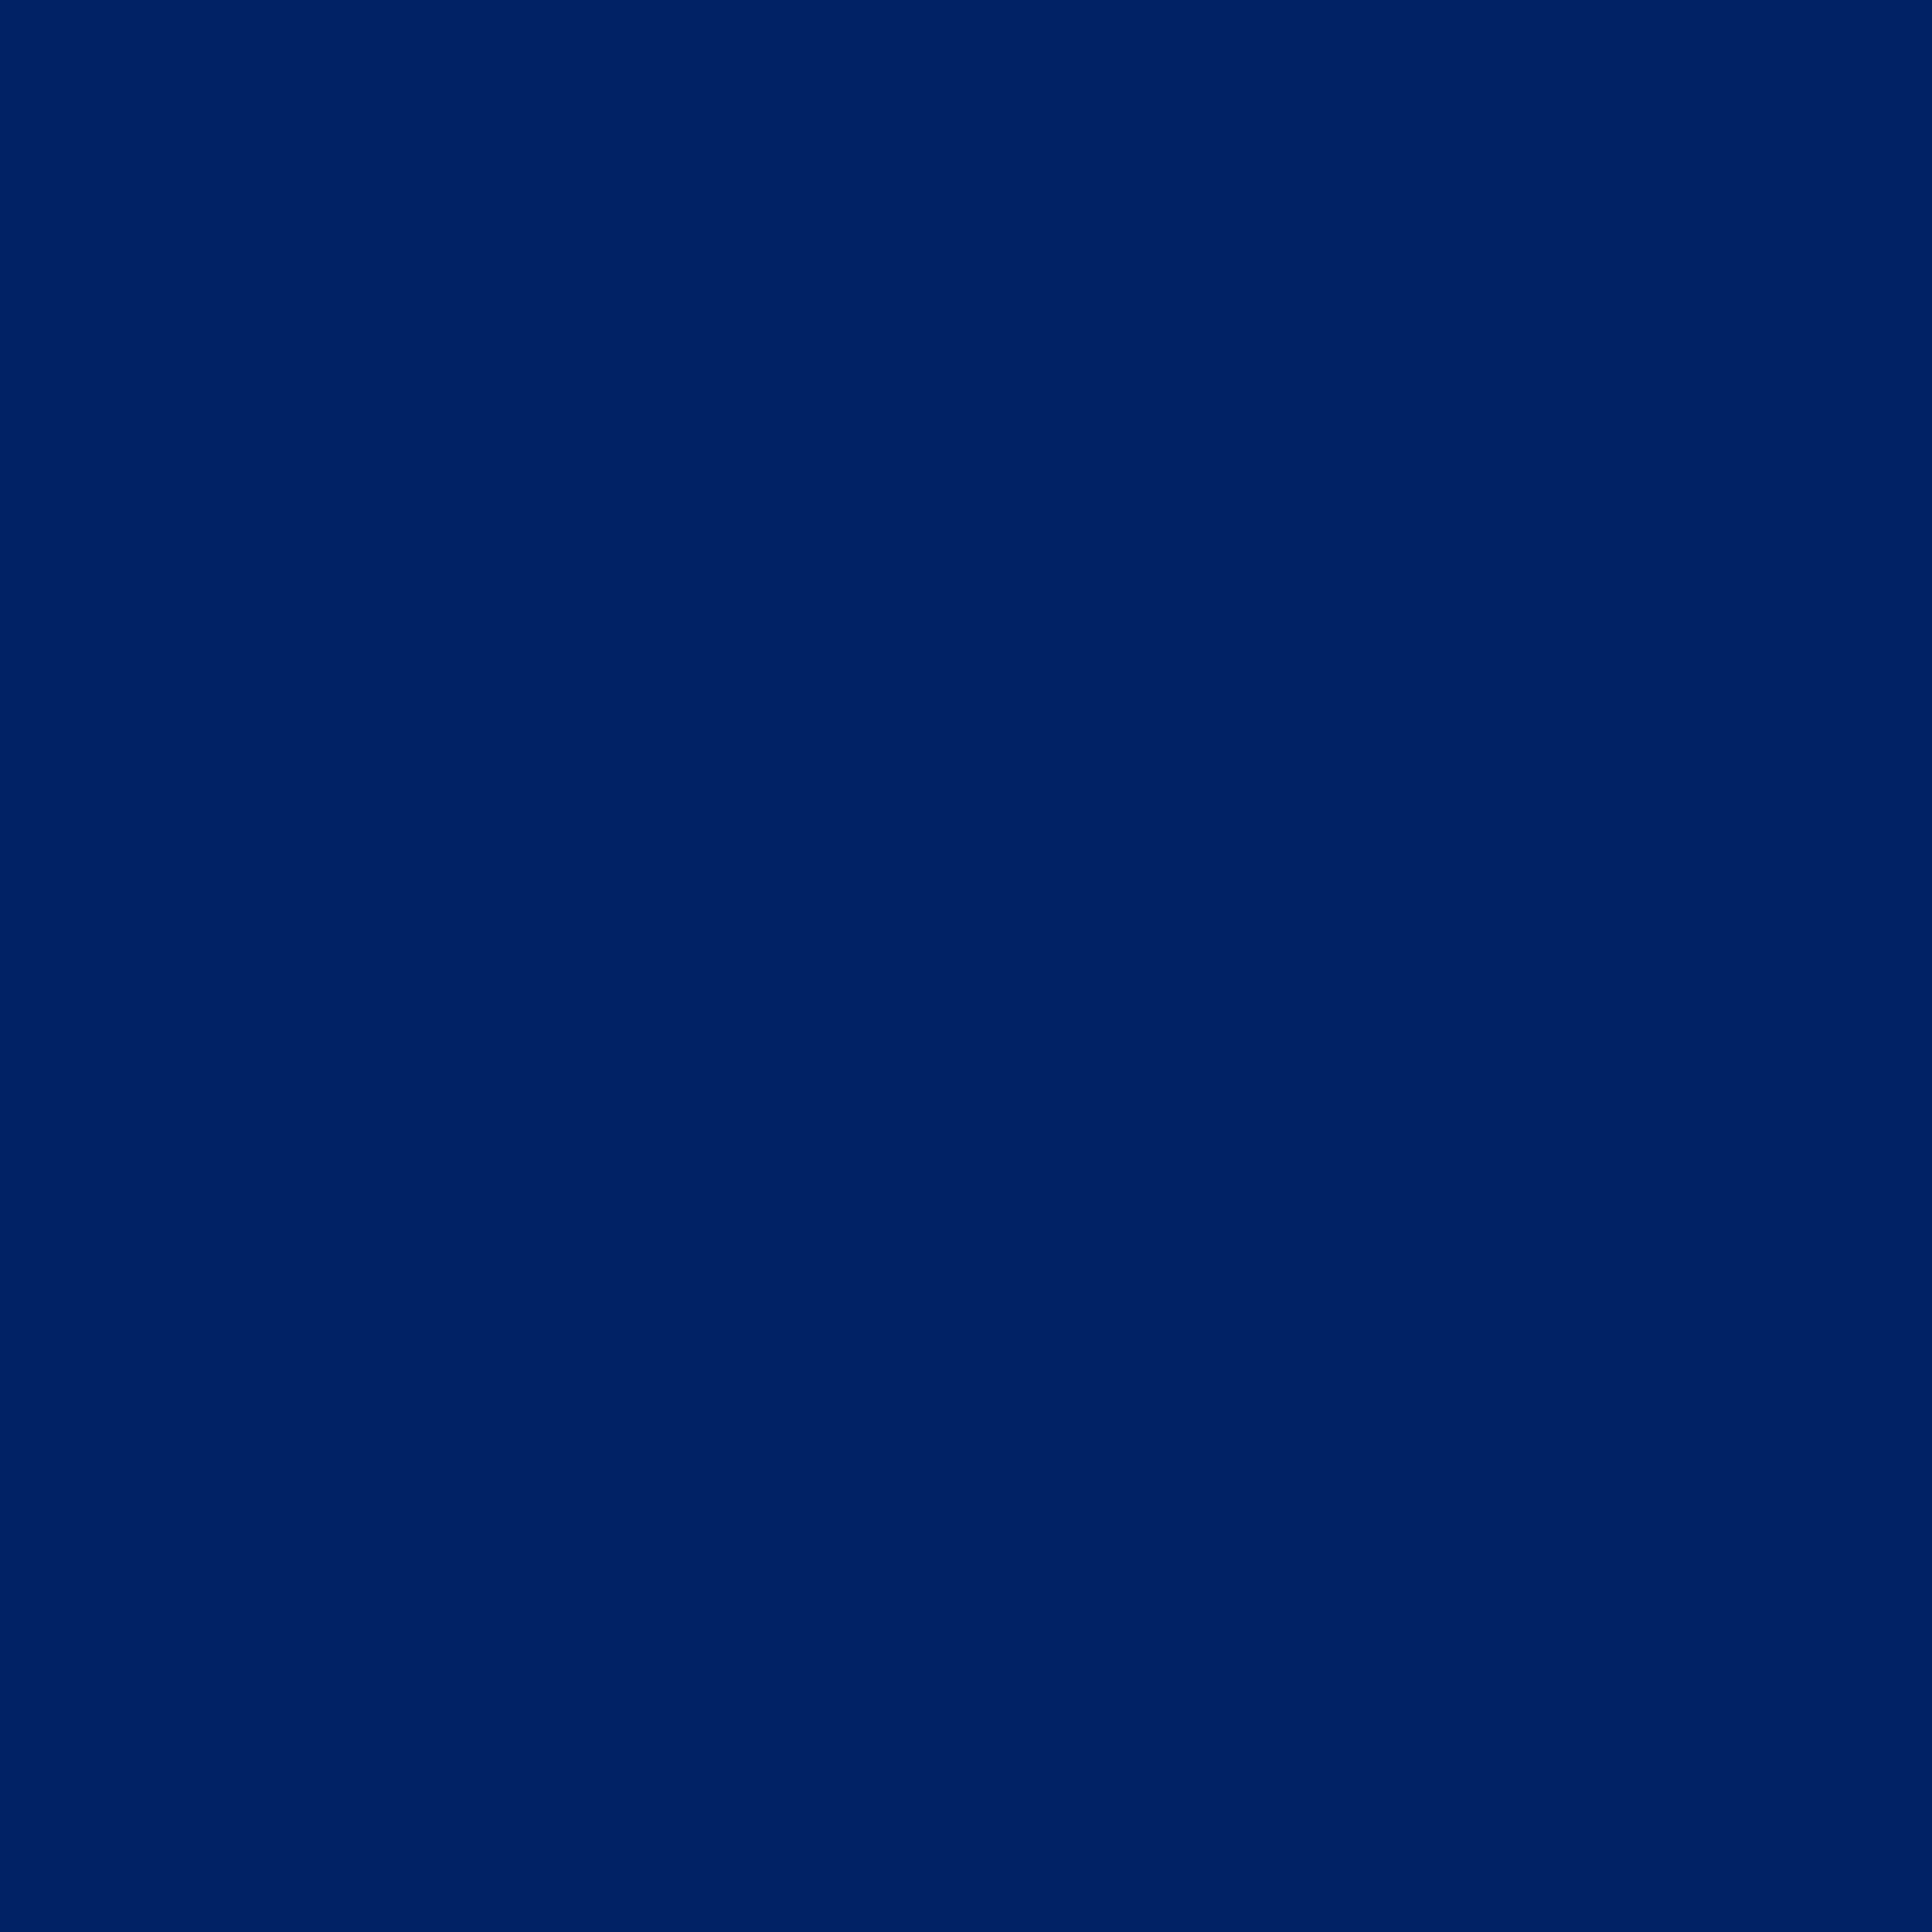 2732x2732 Royal Blue Traditional Solid Color Background